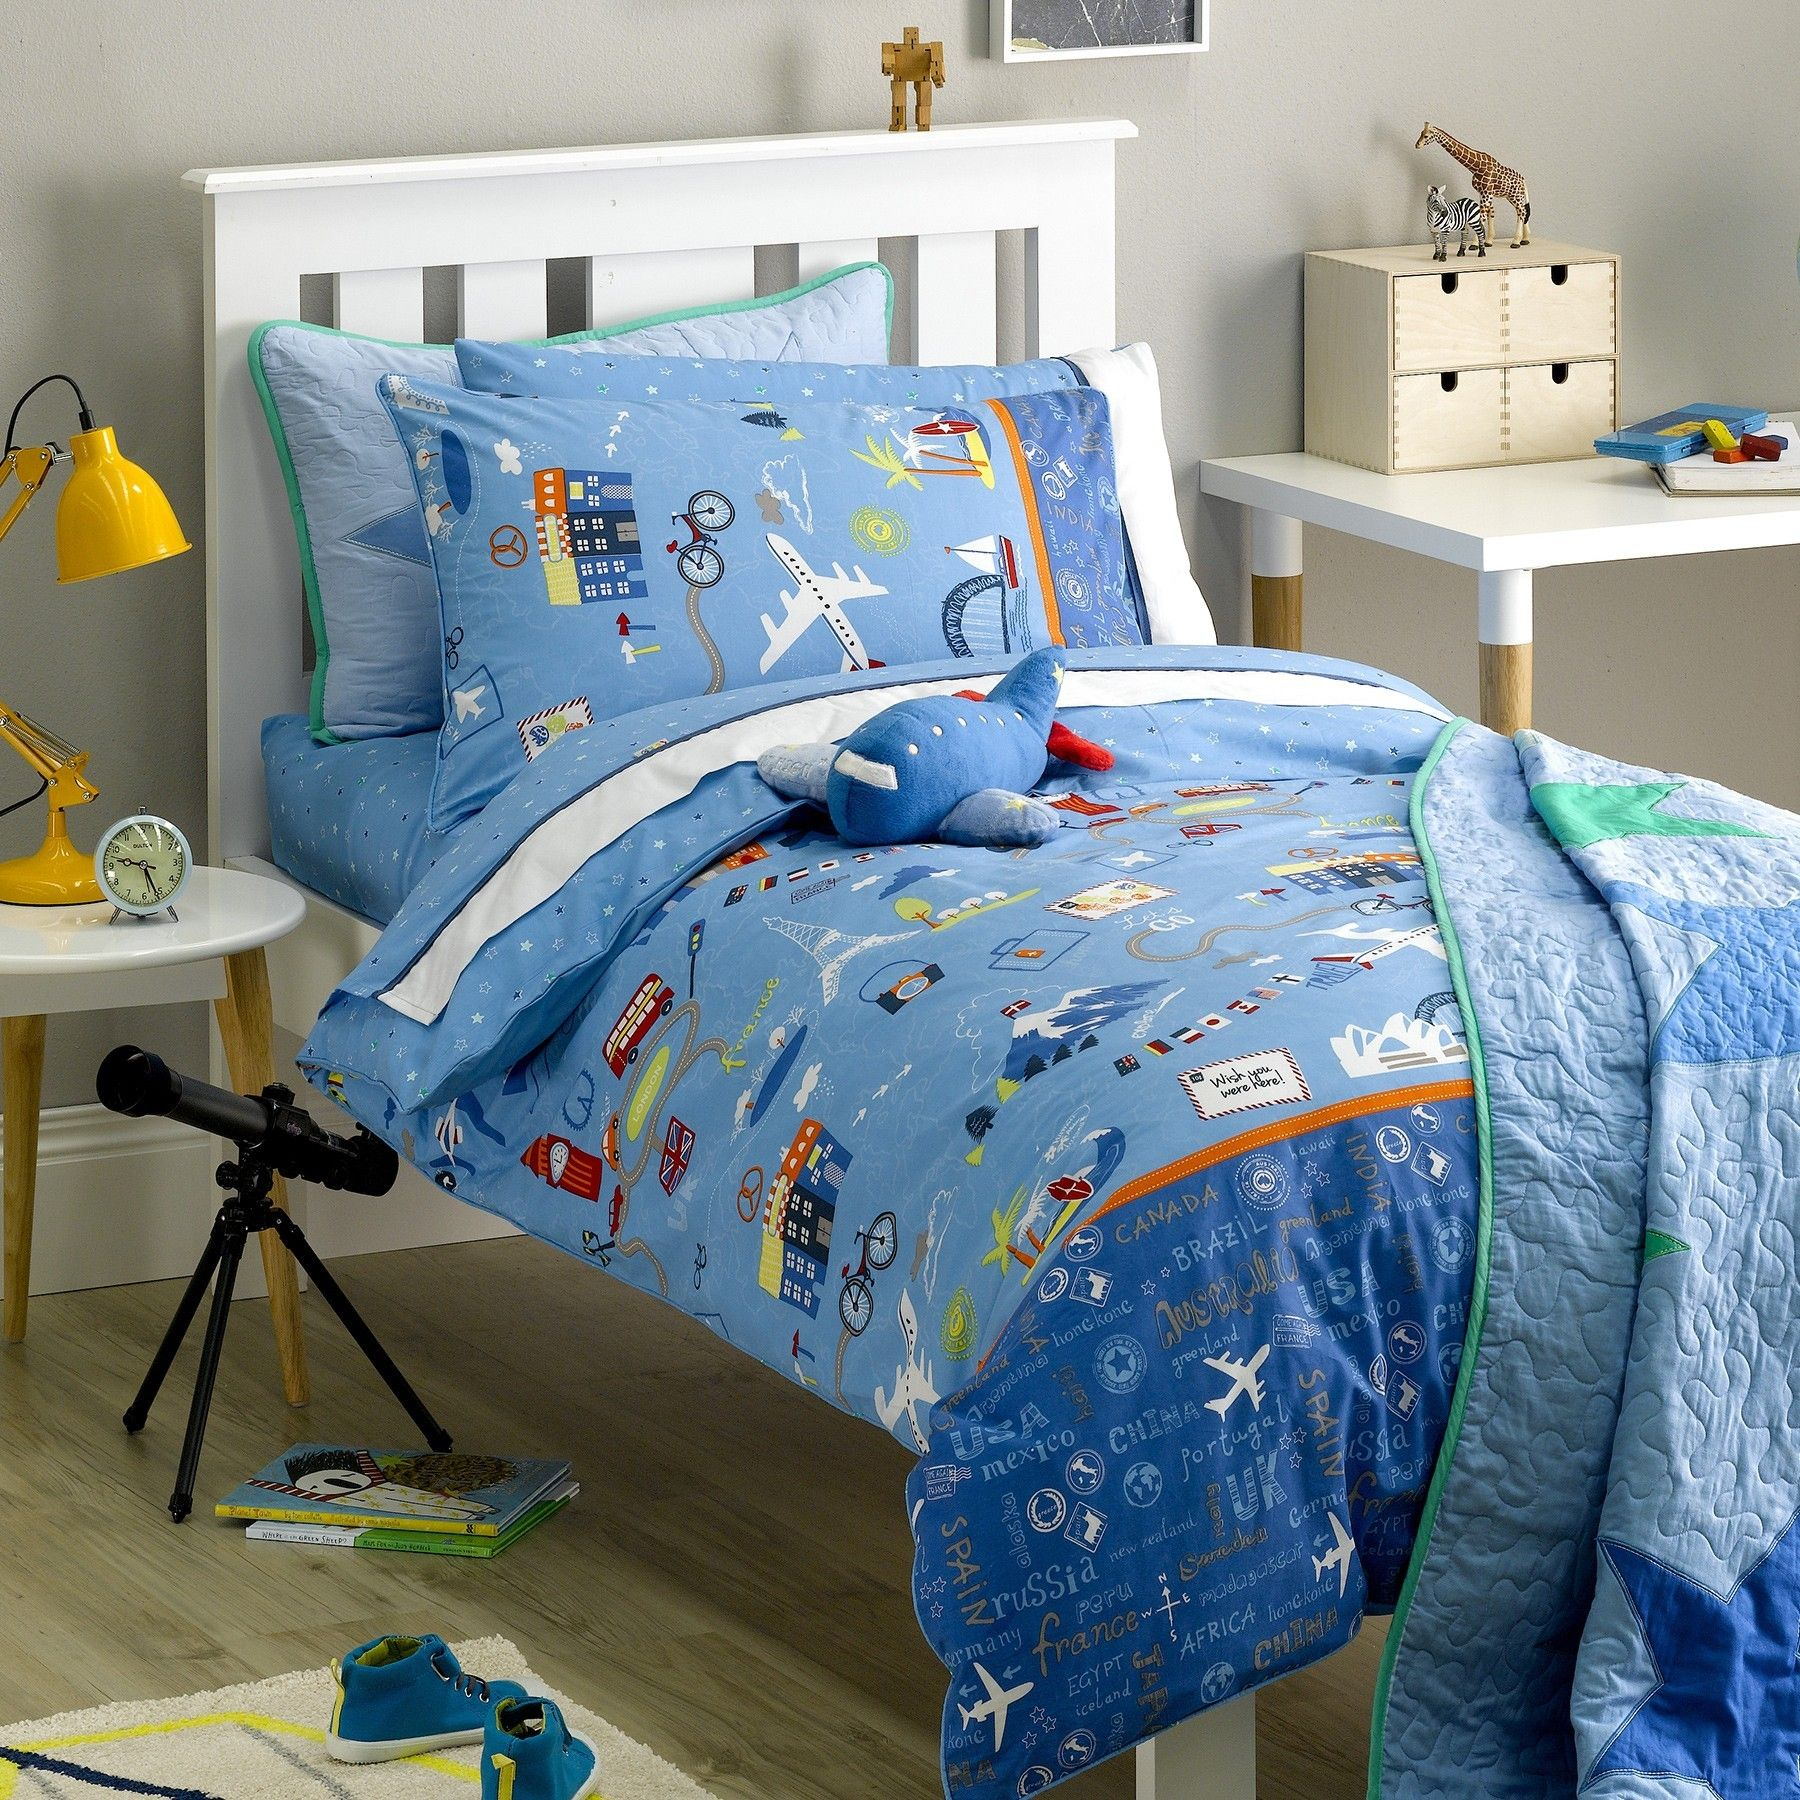 buy freckles single bed quilt cover set - travellerfreckles